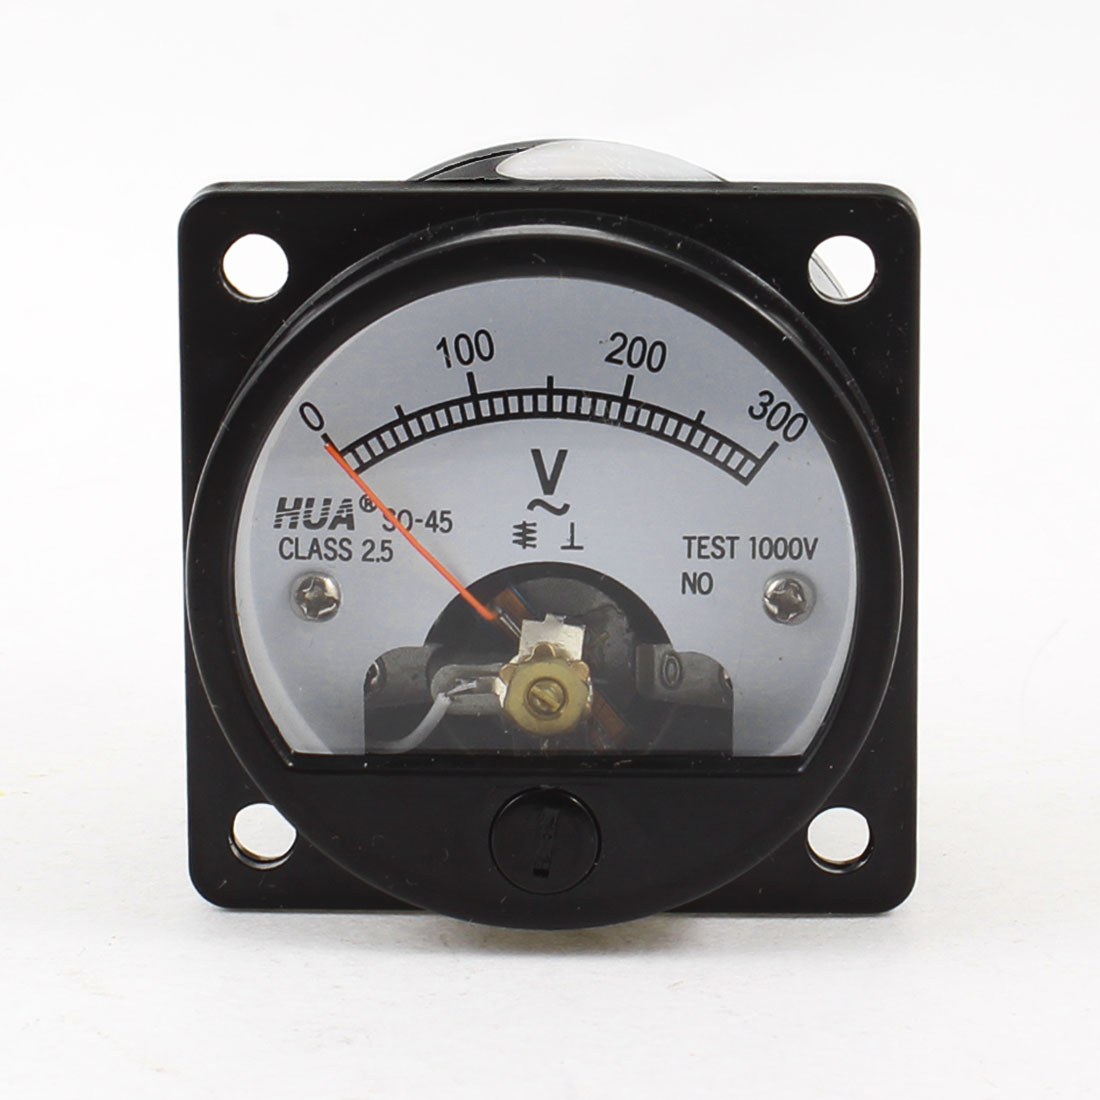 AC 0-300V Fine Tuning Dial Panel Analog Voltage Meter Voltmeter Black